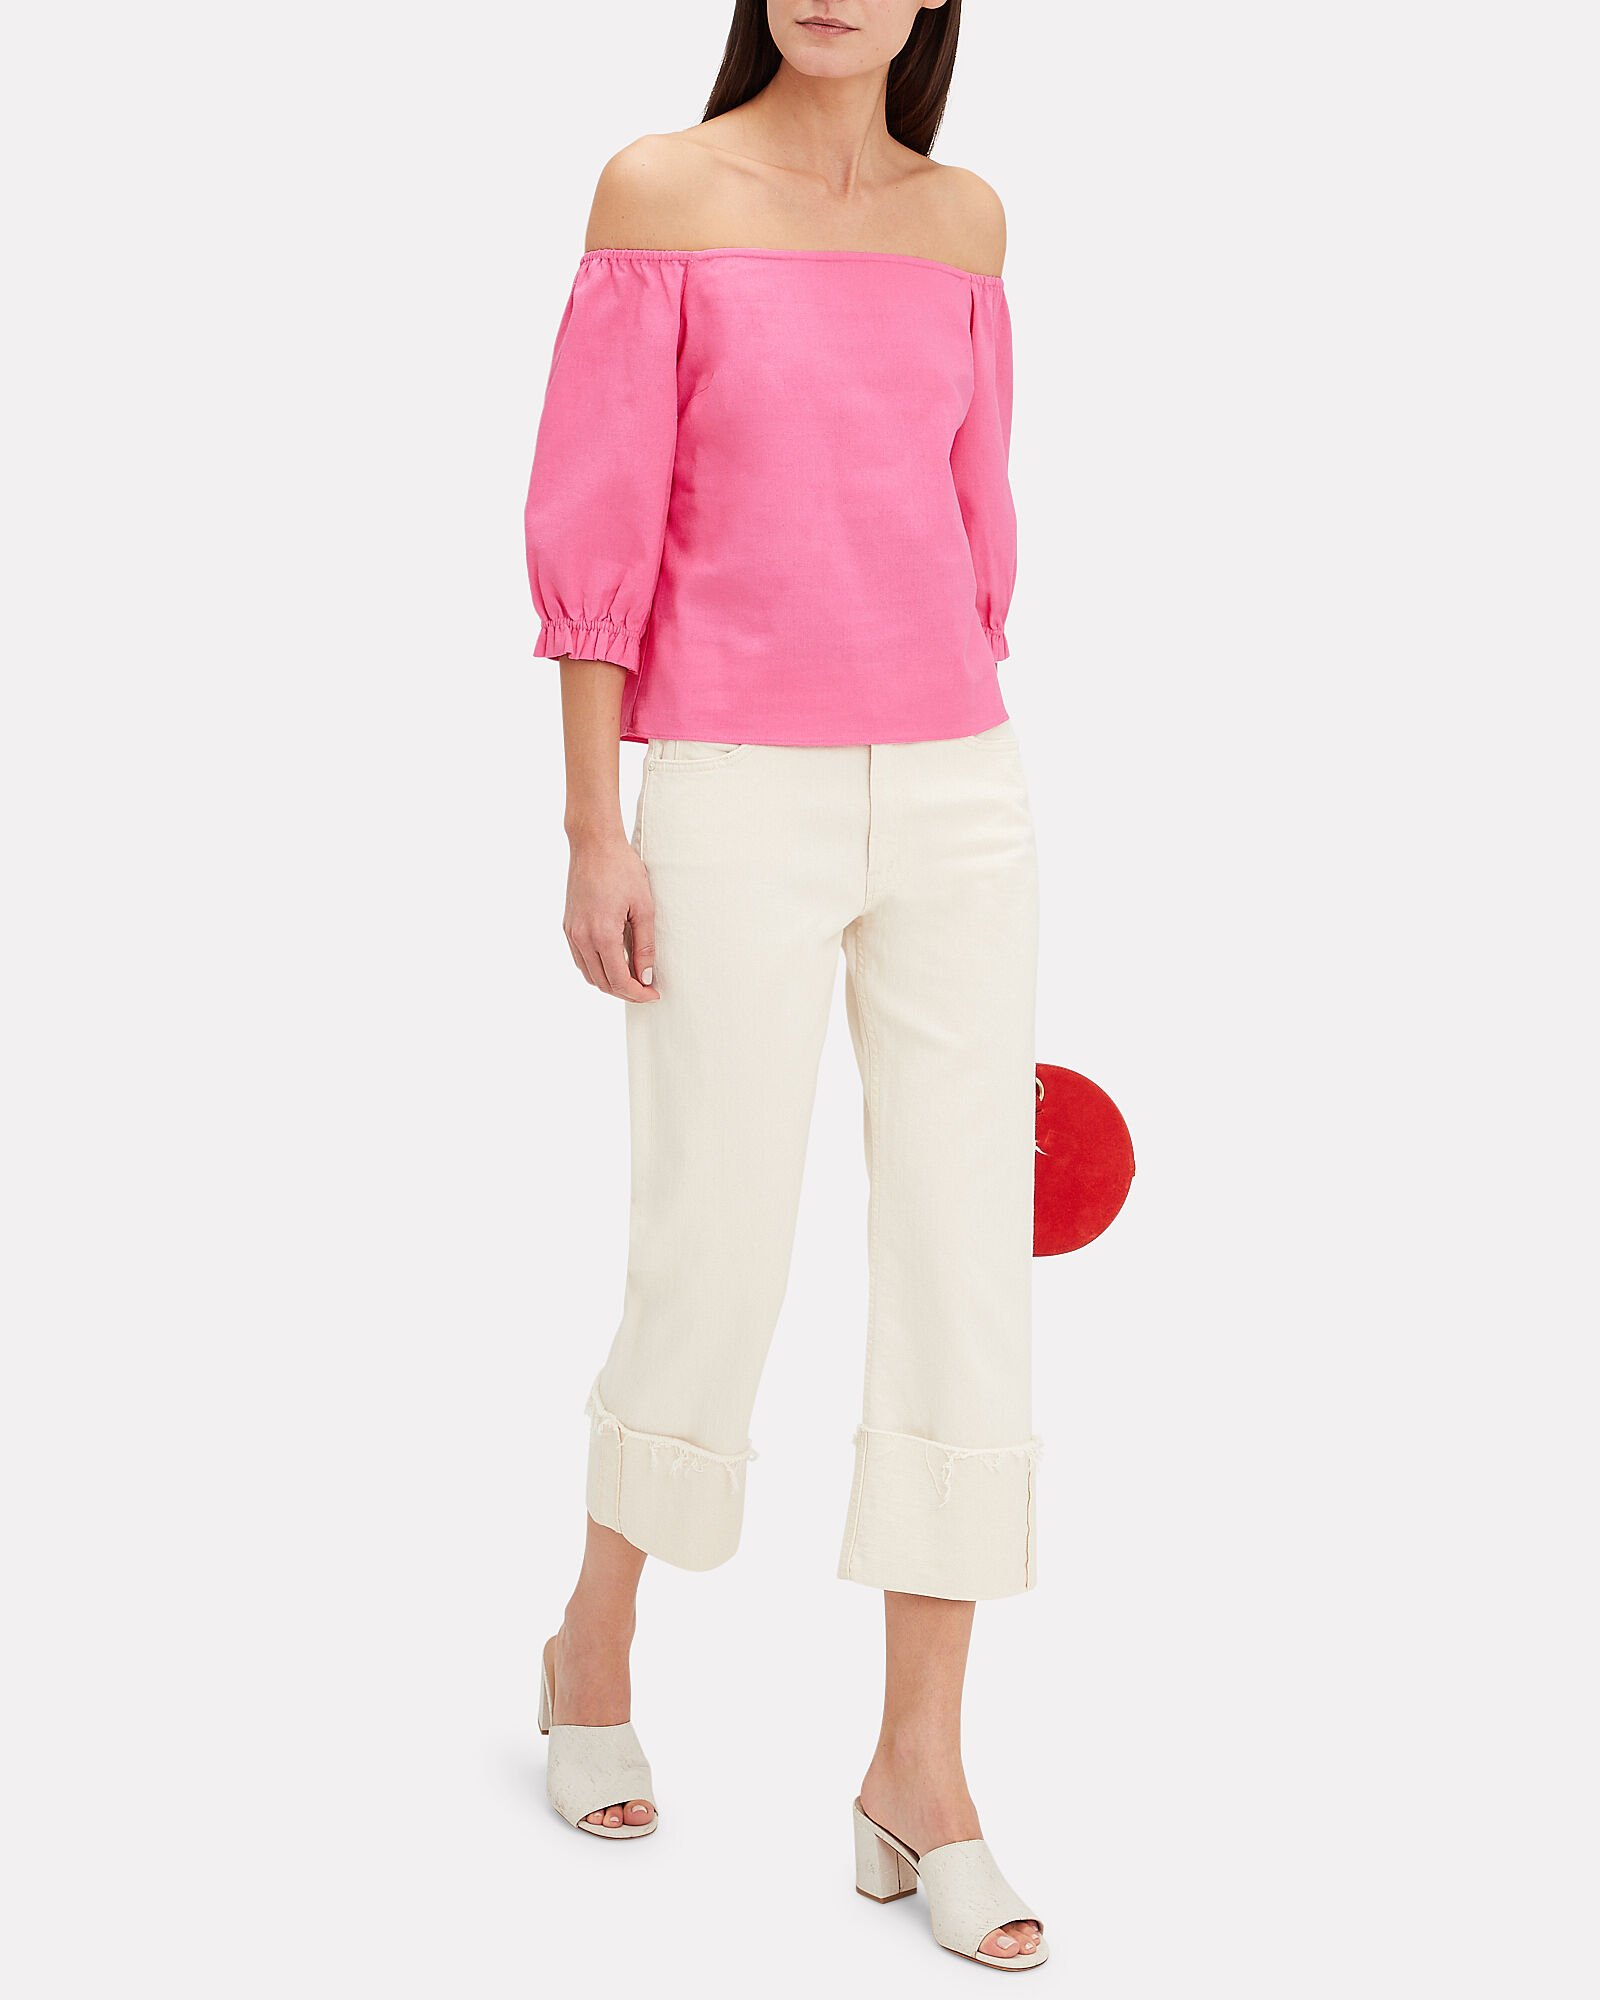 Jenny Off Shoulder Top, PINK, hi-res